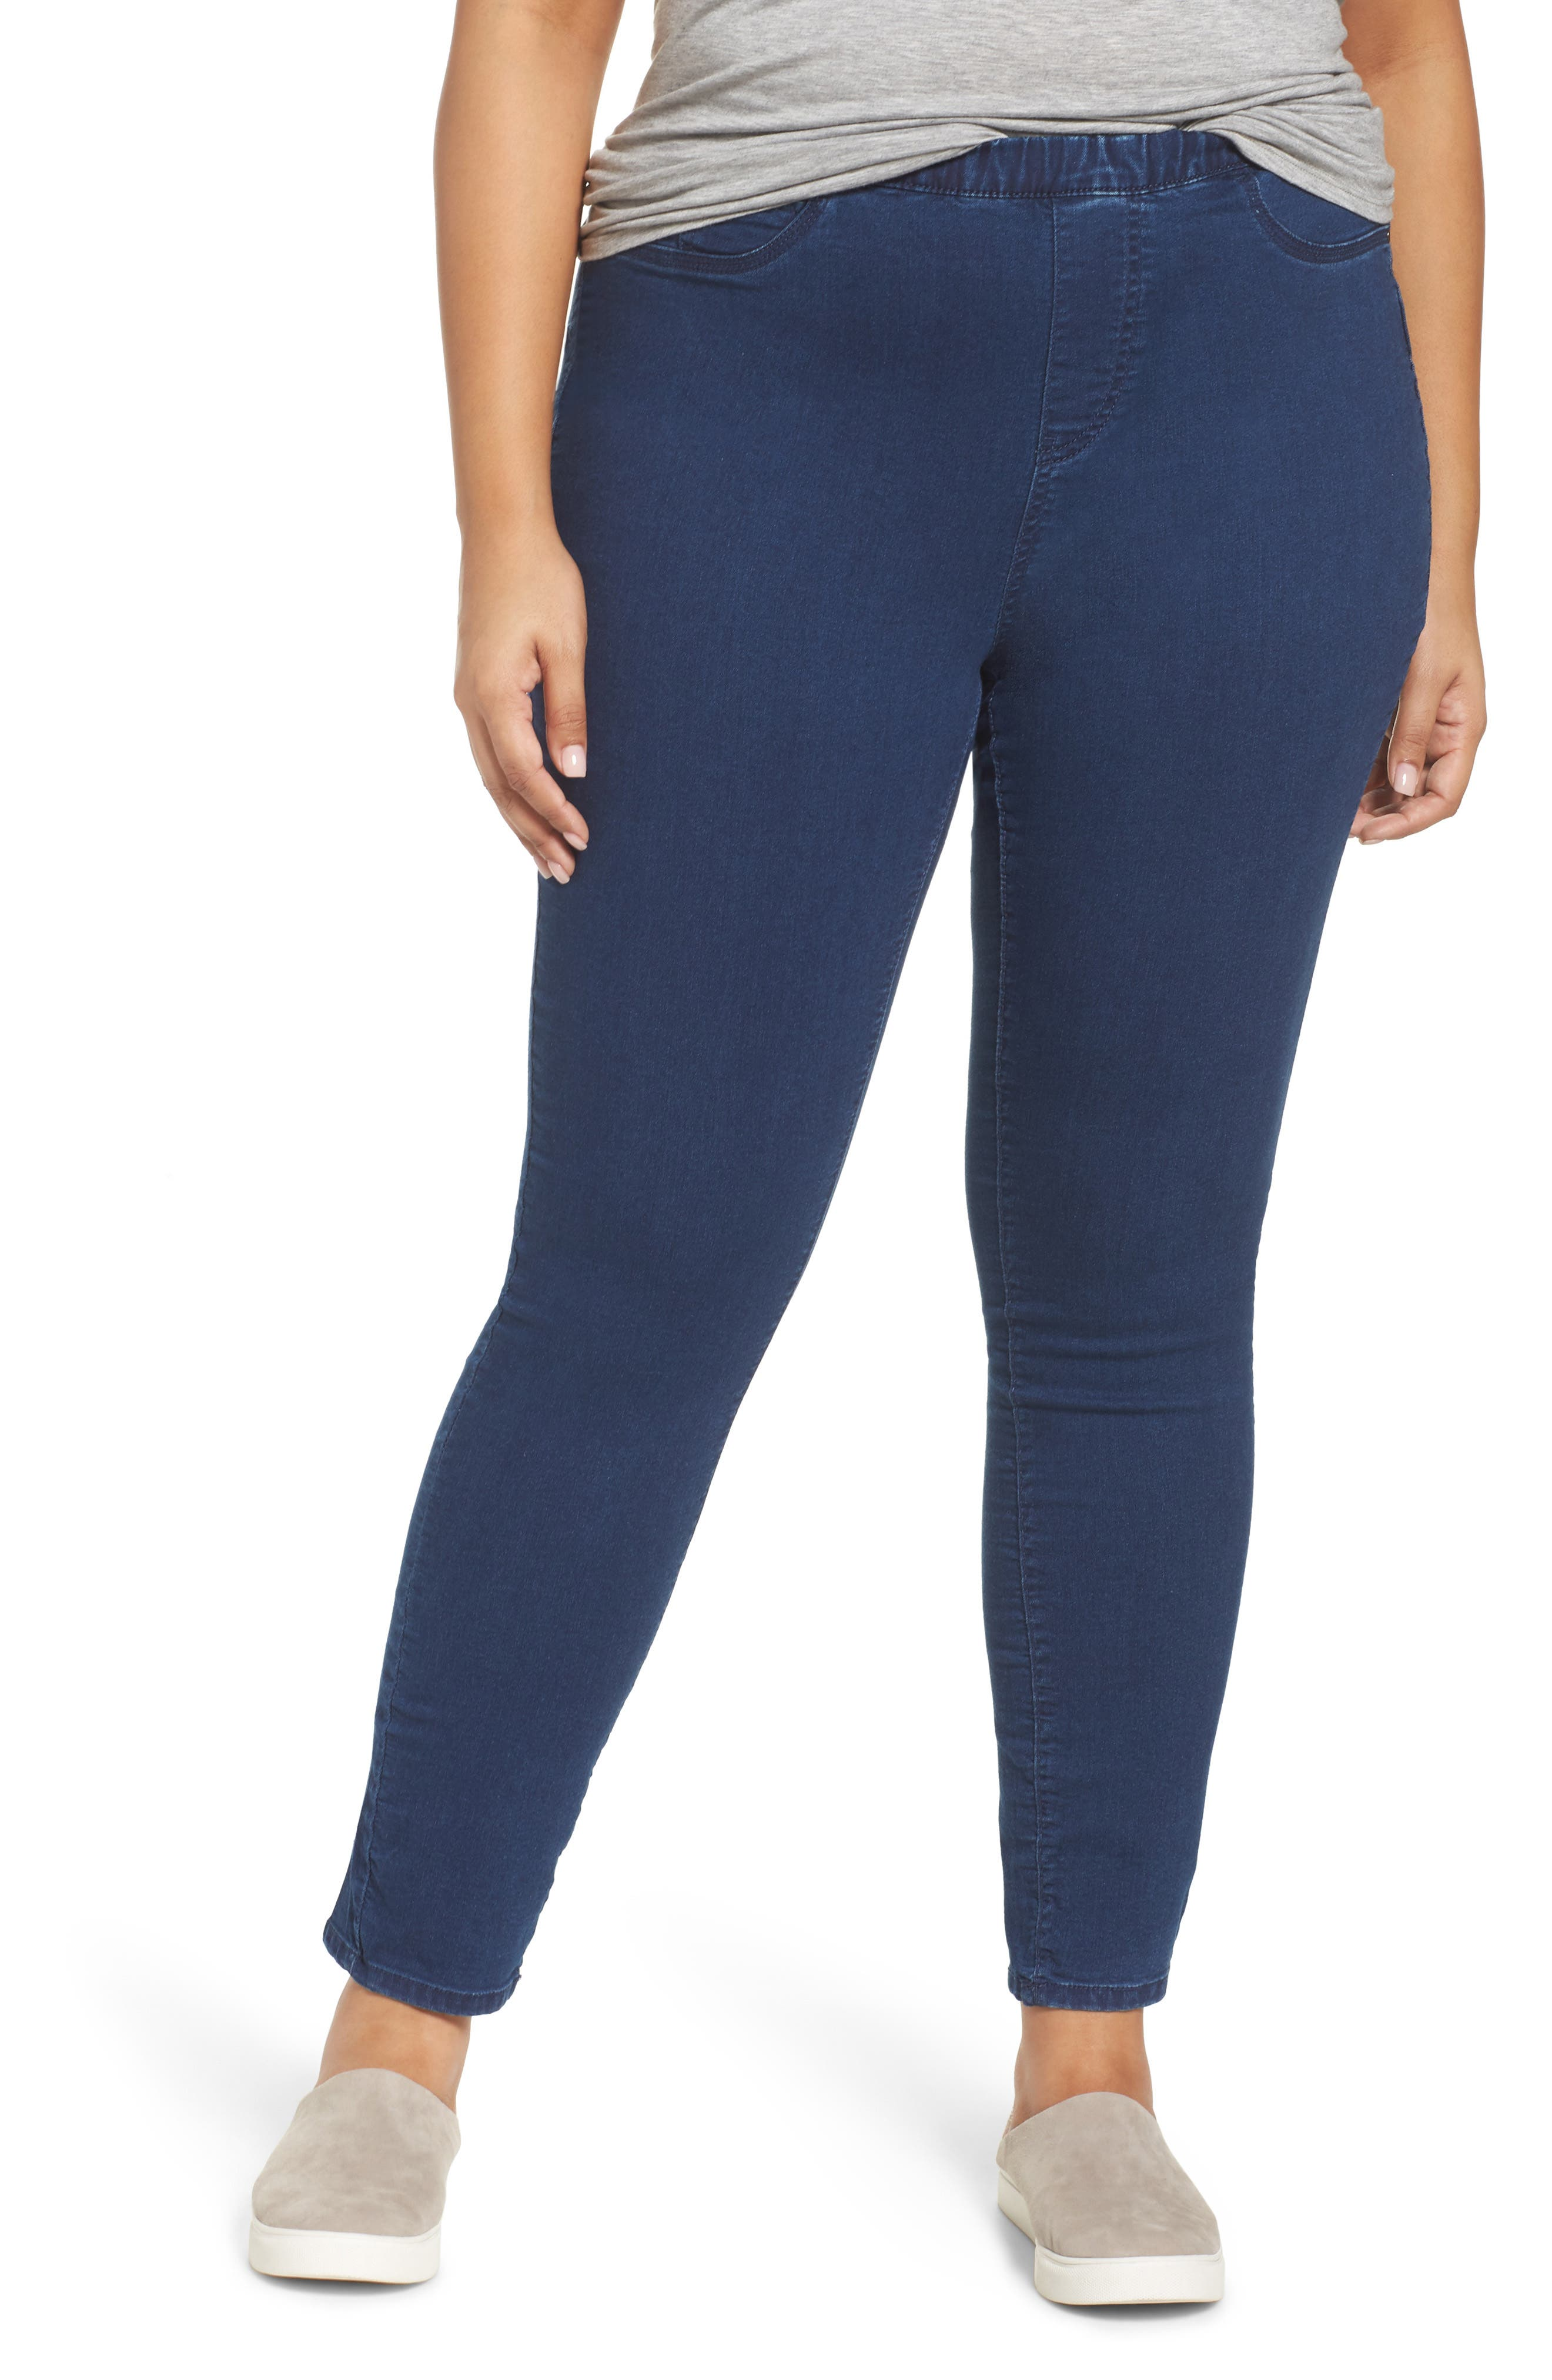 Denim Leggings,                             Main thumbnail 1, color,